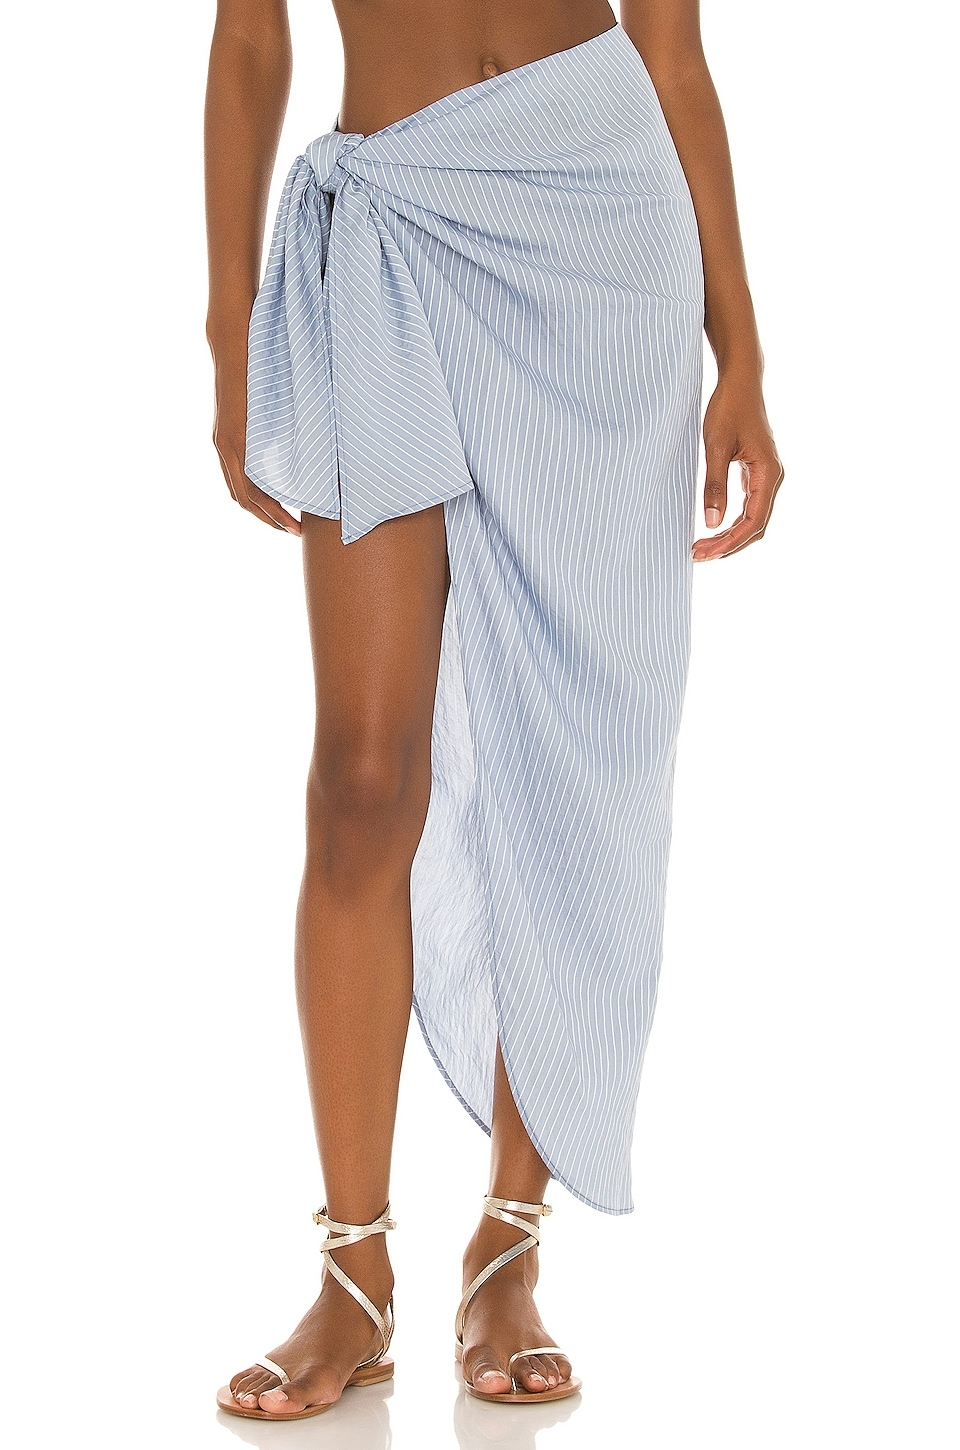 x Sofia Richie Nima Sarong by House of Harlow 1960, available on revolve.com for $168 Olivia Culpo Skirt Exact Product